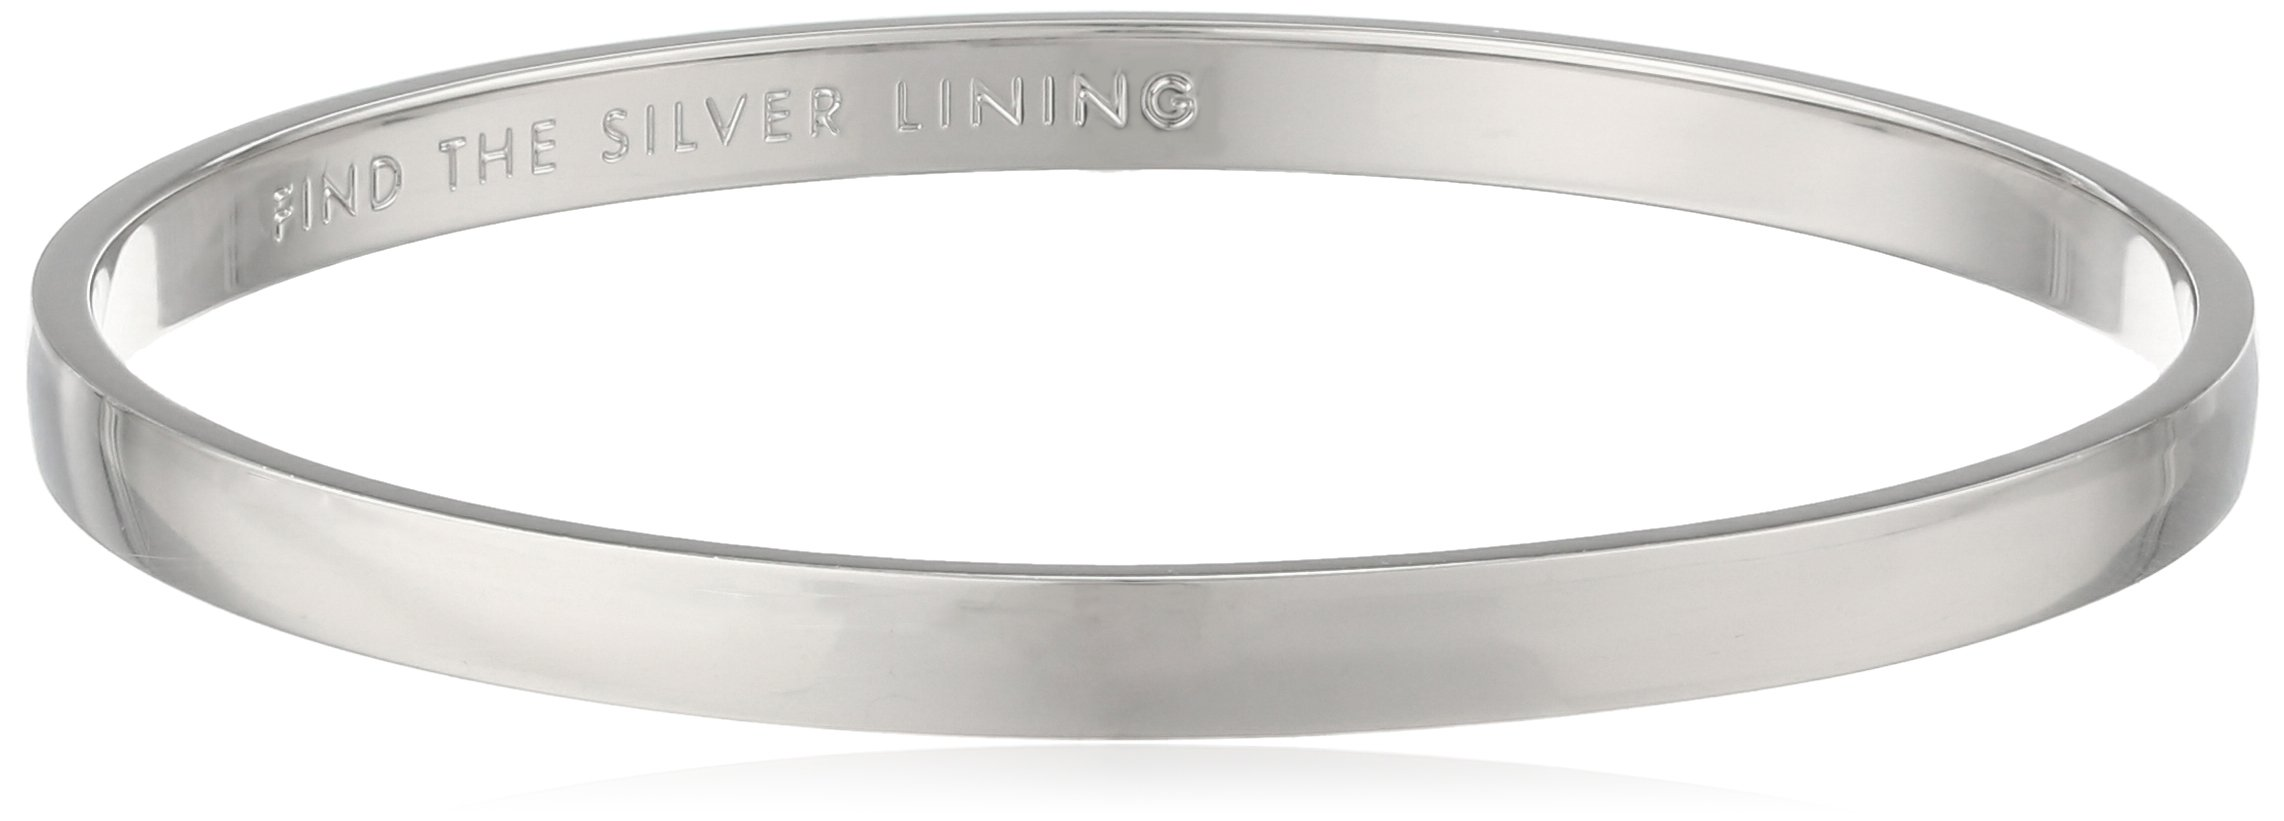 kate spade new york ''Idiom Bangles'' Find The Silver Lining Solid Bangle Bracelet